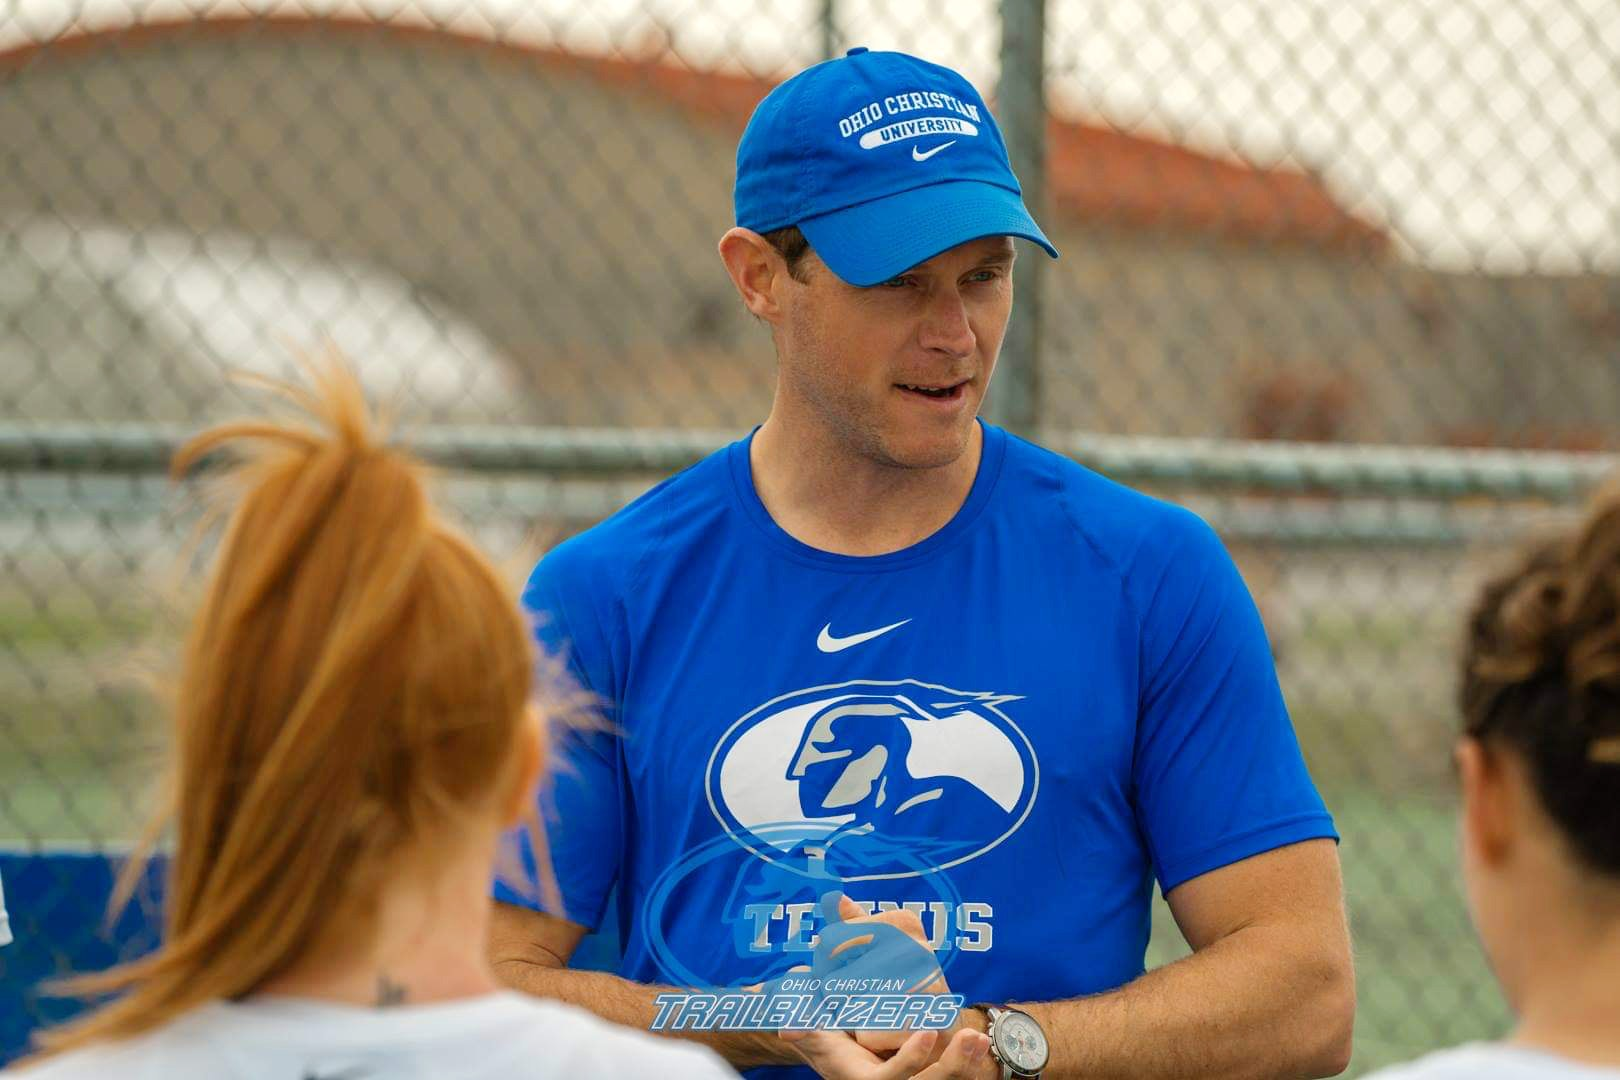 Brent M. teaches tennis lessons in Columbus, OHIO